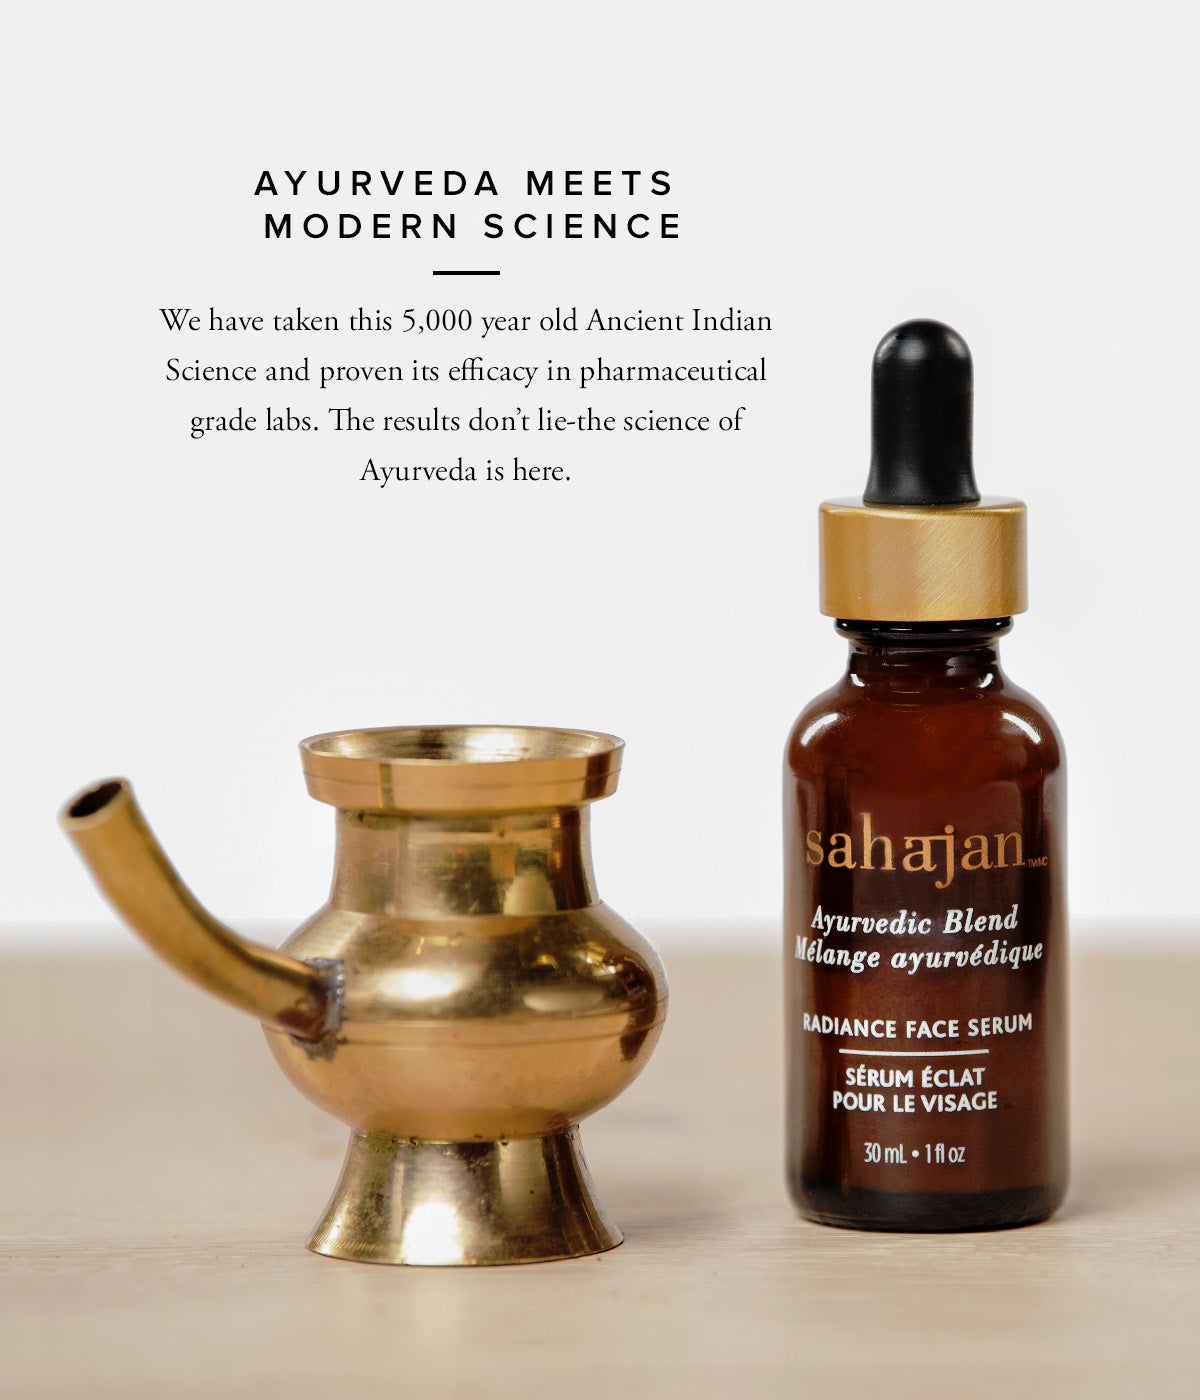 Ayurveda Meets Modern Science  We have taken this 5,000 year old Ancient Indian Science and proven its efficacy in pharmaceutical grade labs. The results don't lie-the science of Ayurveda is here.